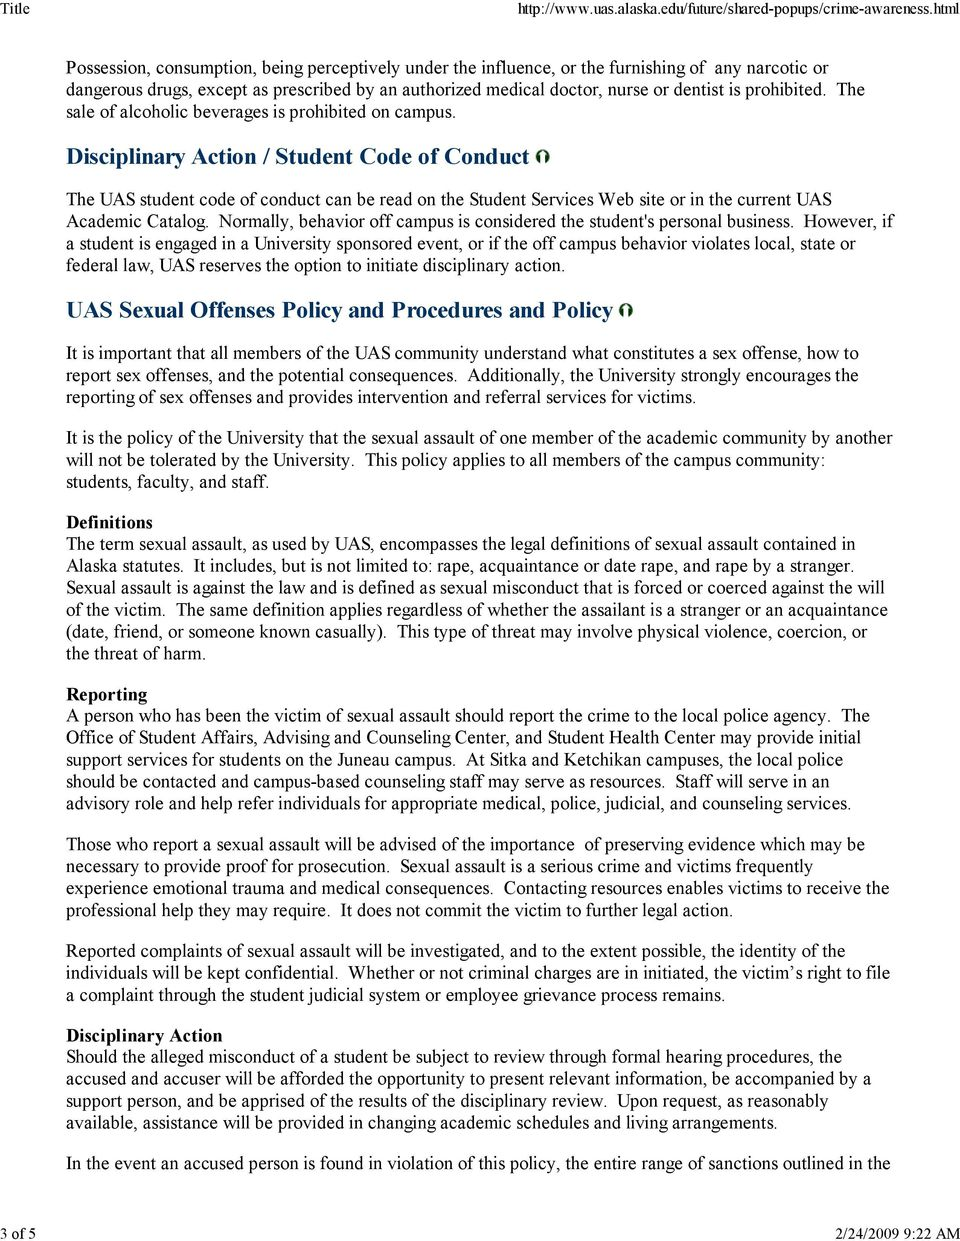 Disciplinary Action / Student Code of Conduct The UAS student code of conduct can be read on the Student Services Web site or in the current UAS Academic Catalog.